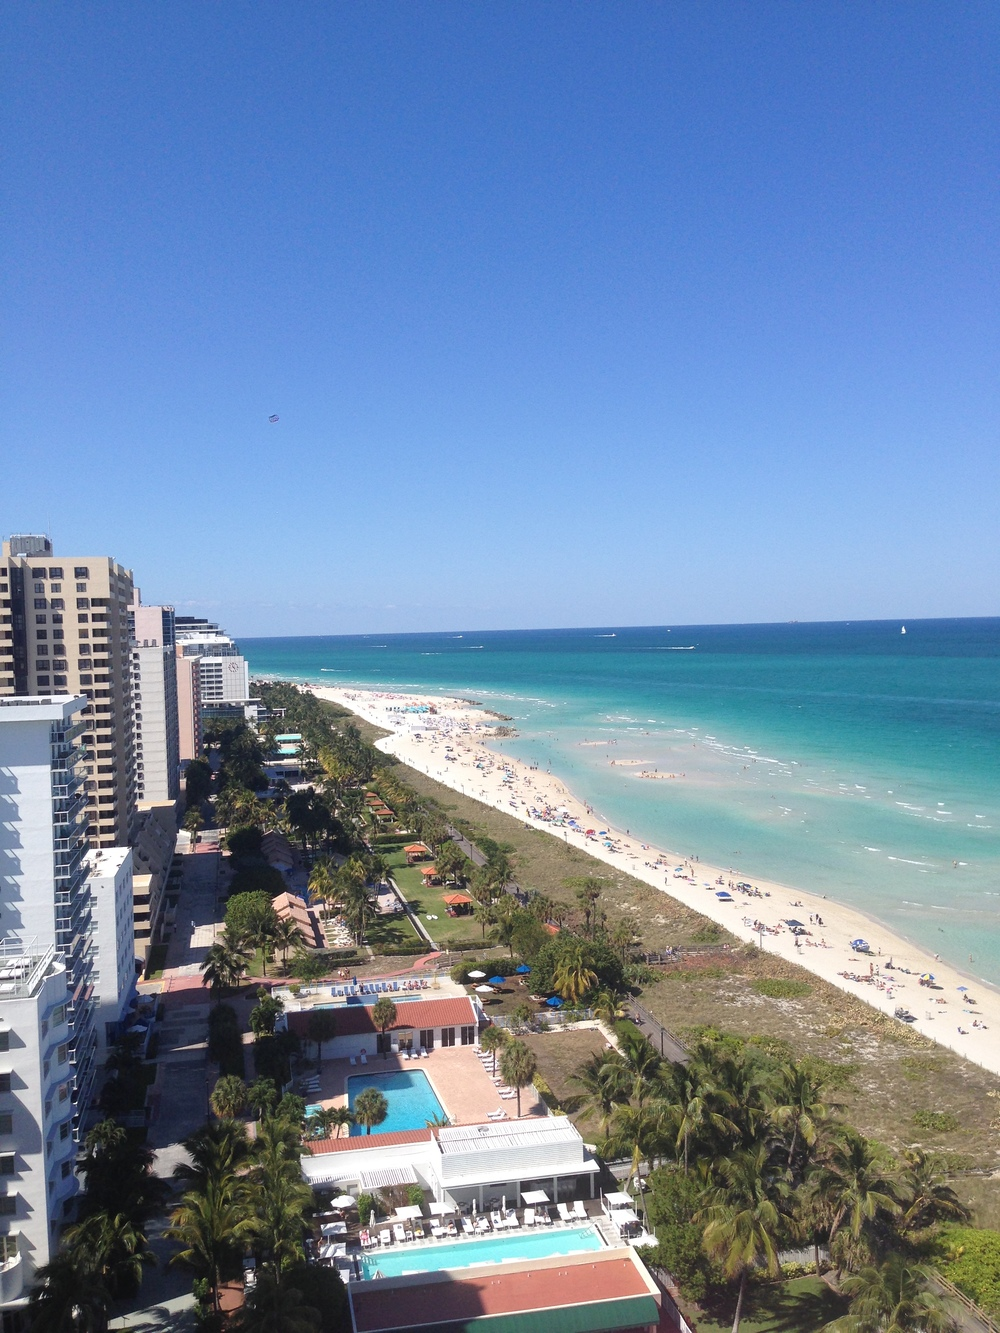 View from 1 Hotel South Beach